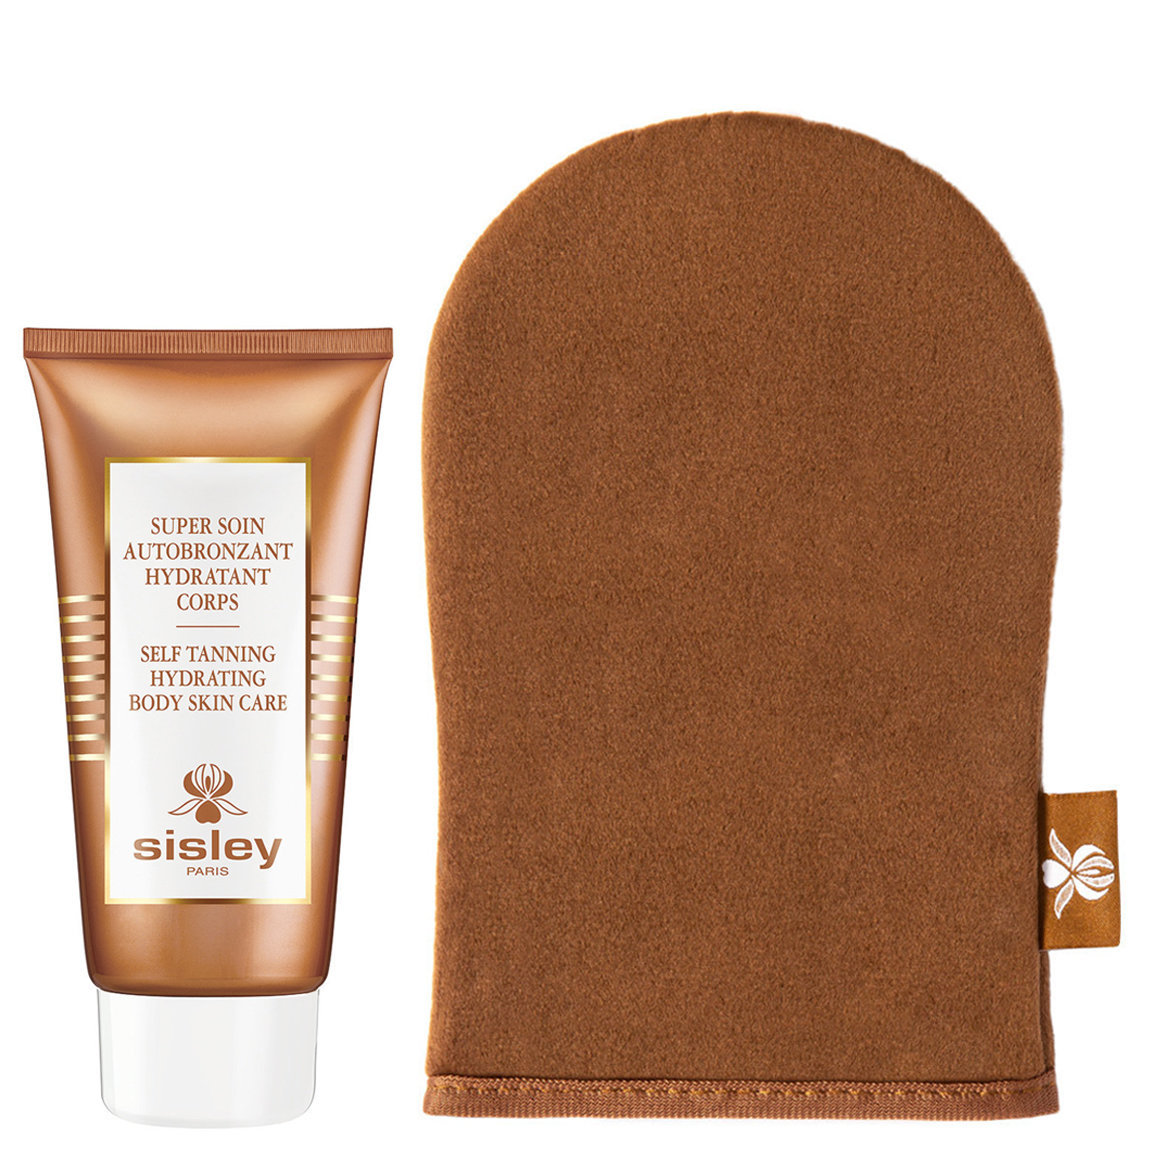 Sisley-Paris Self Tanning Body Skin Care alternative view 1 - product swatch.